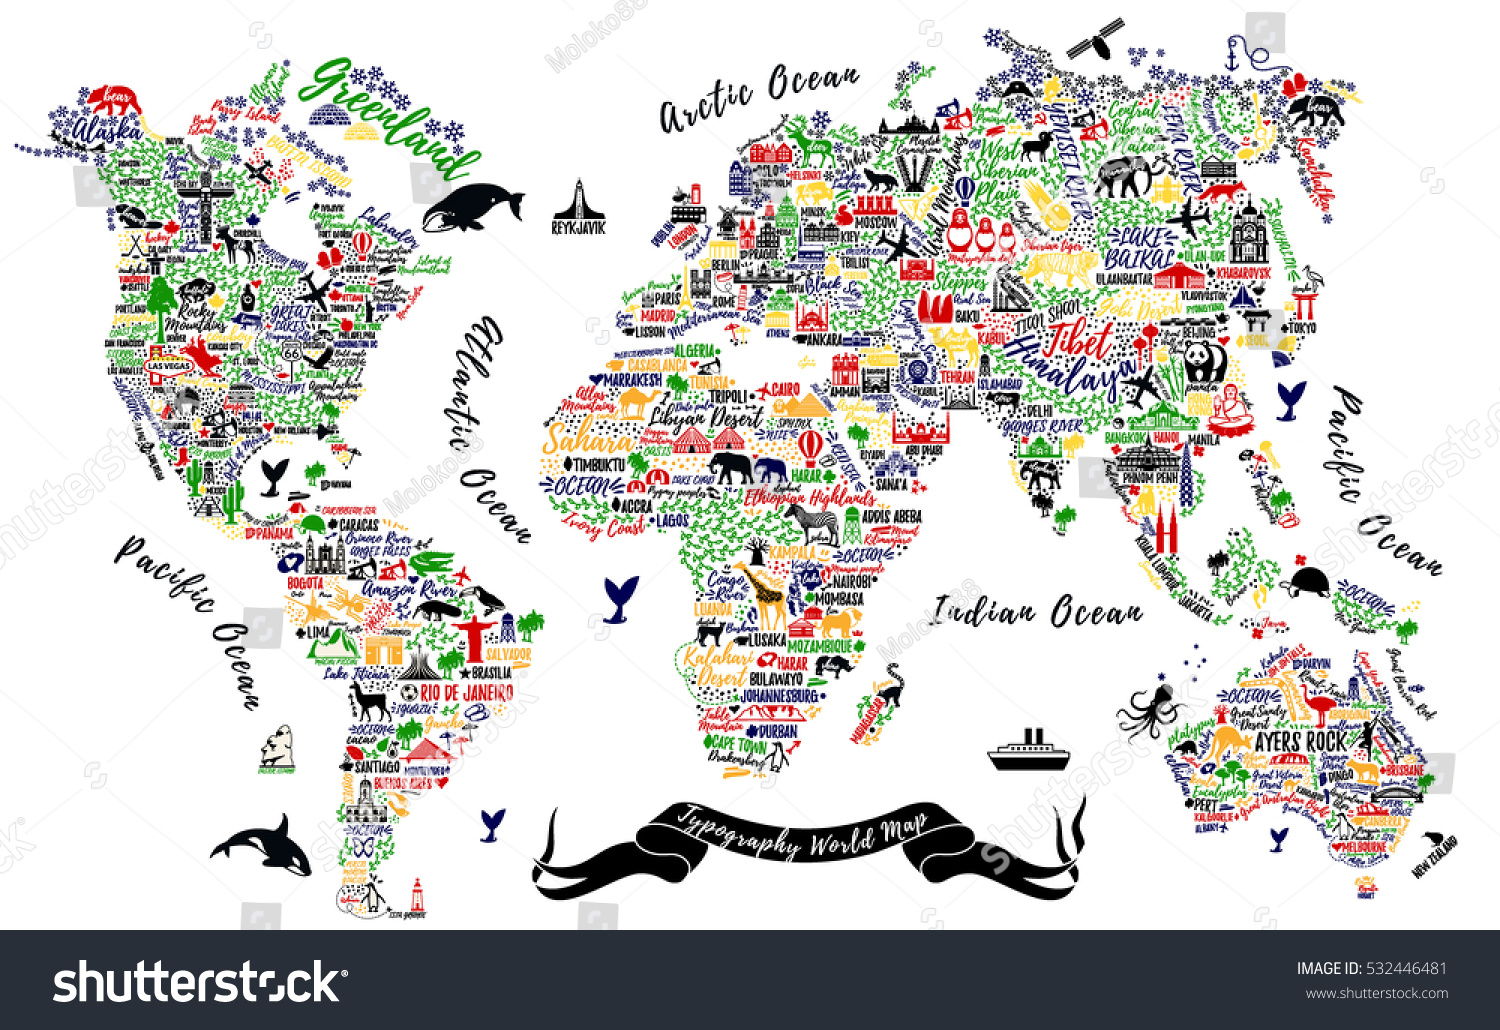 Typography world map travel poster cities stock photo photo vector typography world map travel poster with cities and sightseeing attractions inspirational vector illustration gumiabroncs Images